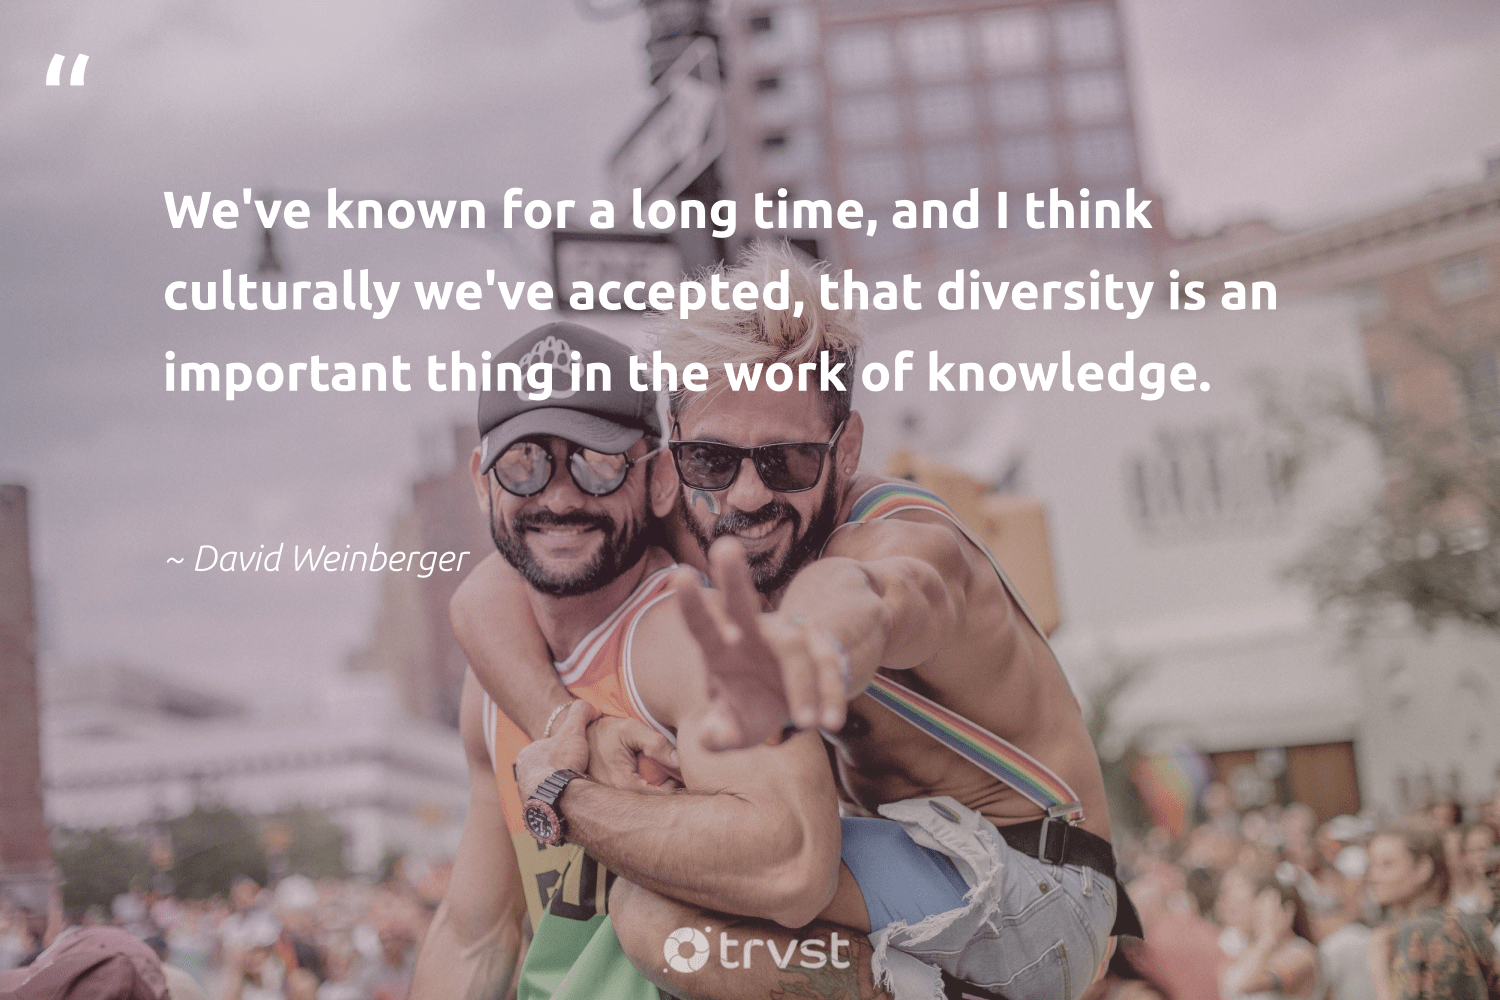 """We've known for a long time, and I think culturally we've accepted, that diversity is an important thing in the work of knowledge.""  - David Weinberger #trvst #quotes #diversity #representationmatters #discrimination #socialchange #bethechange #beinspired #inclusion #giveback #weareallone #thinkgreen"